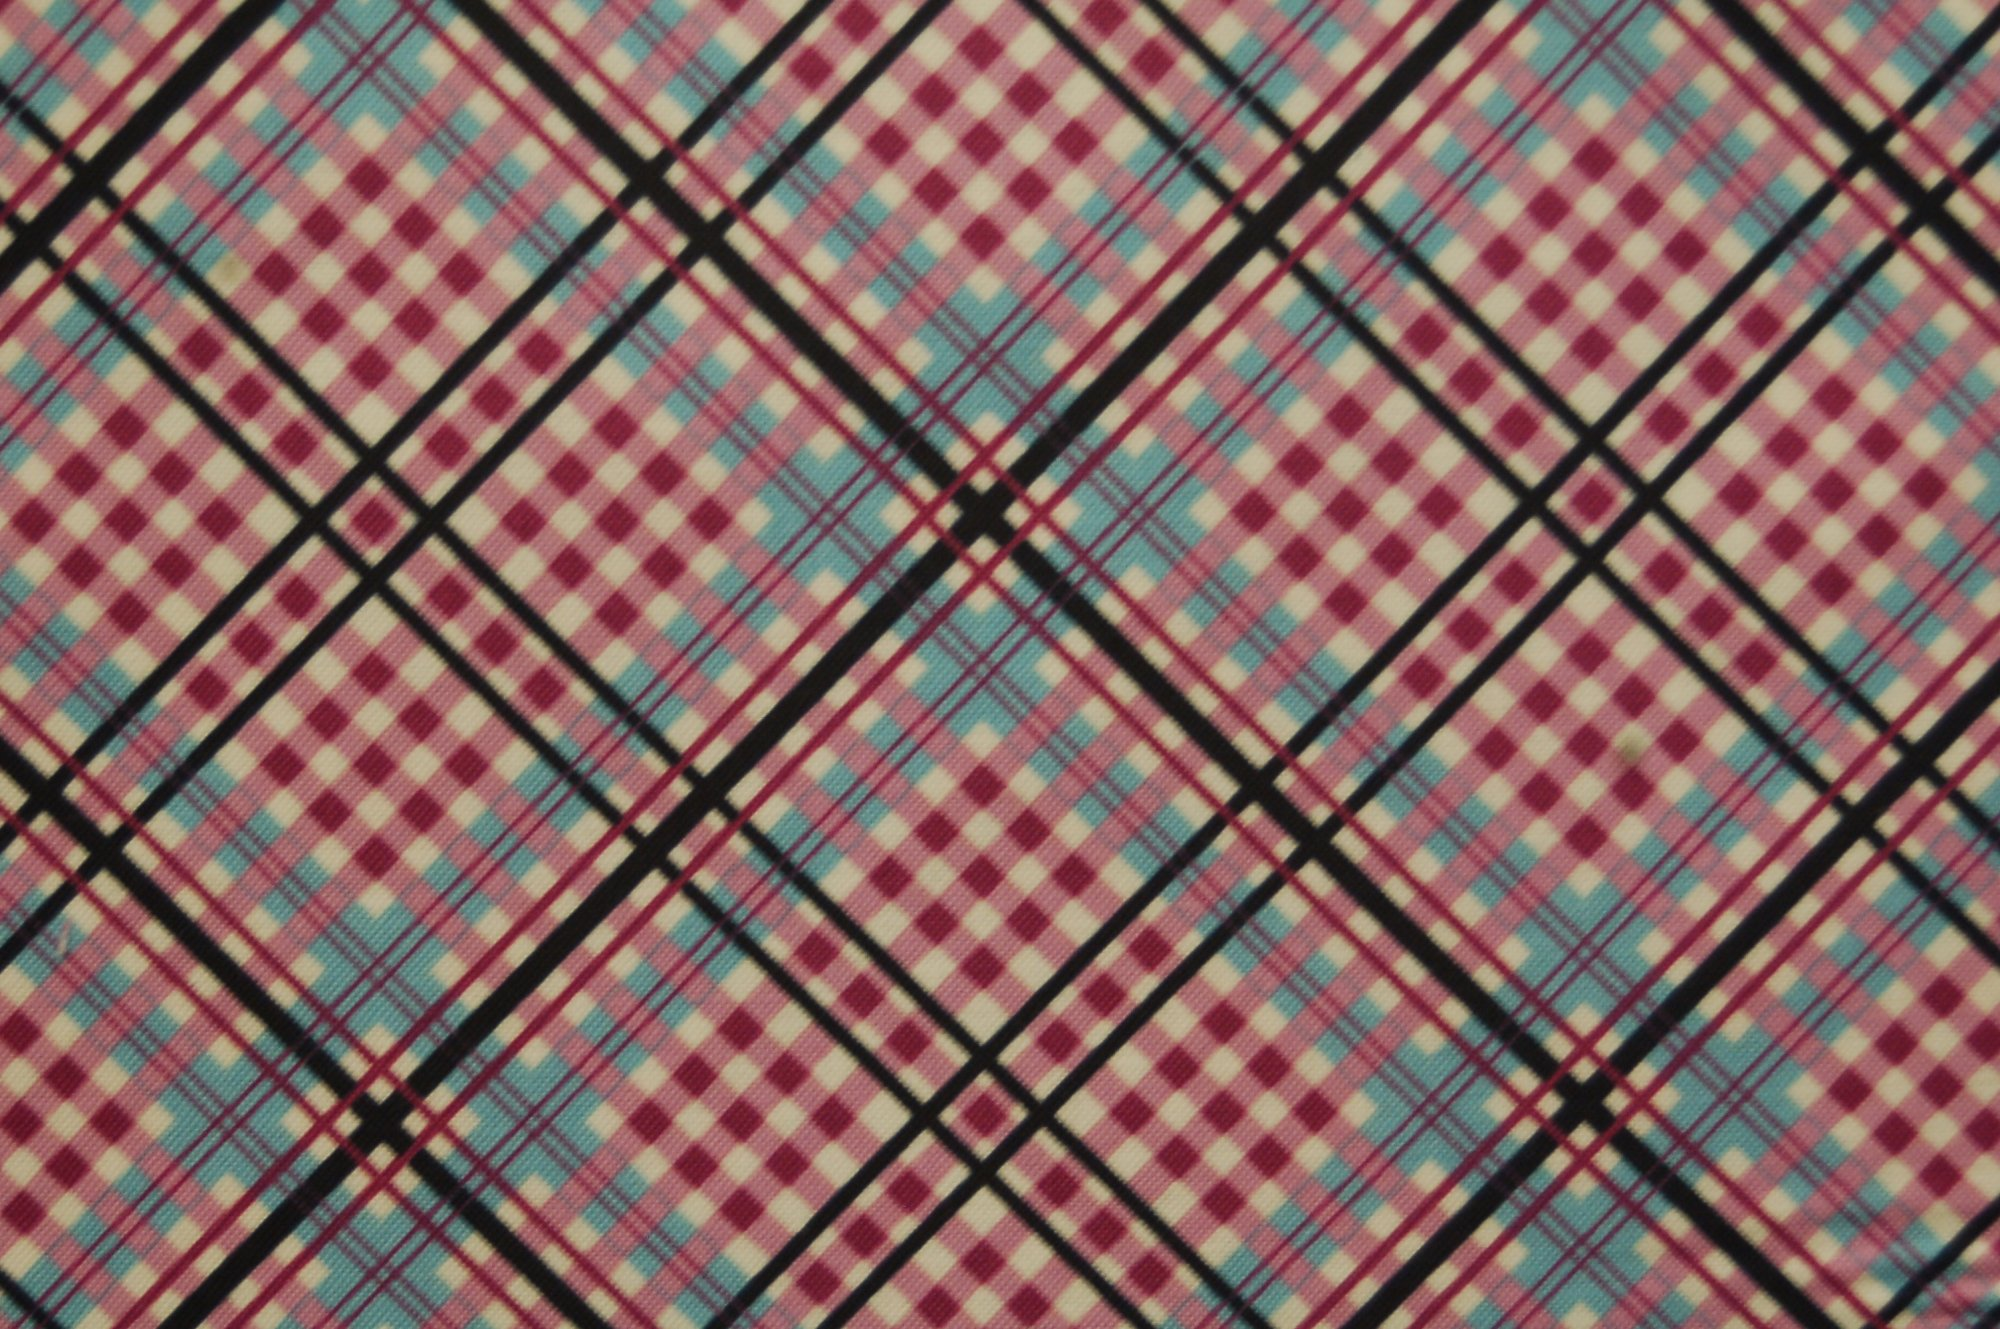 Shelburne Falls Complex Plaid (Lilac) by Denyse Schmidt for Free Spirit